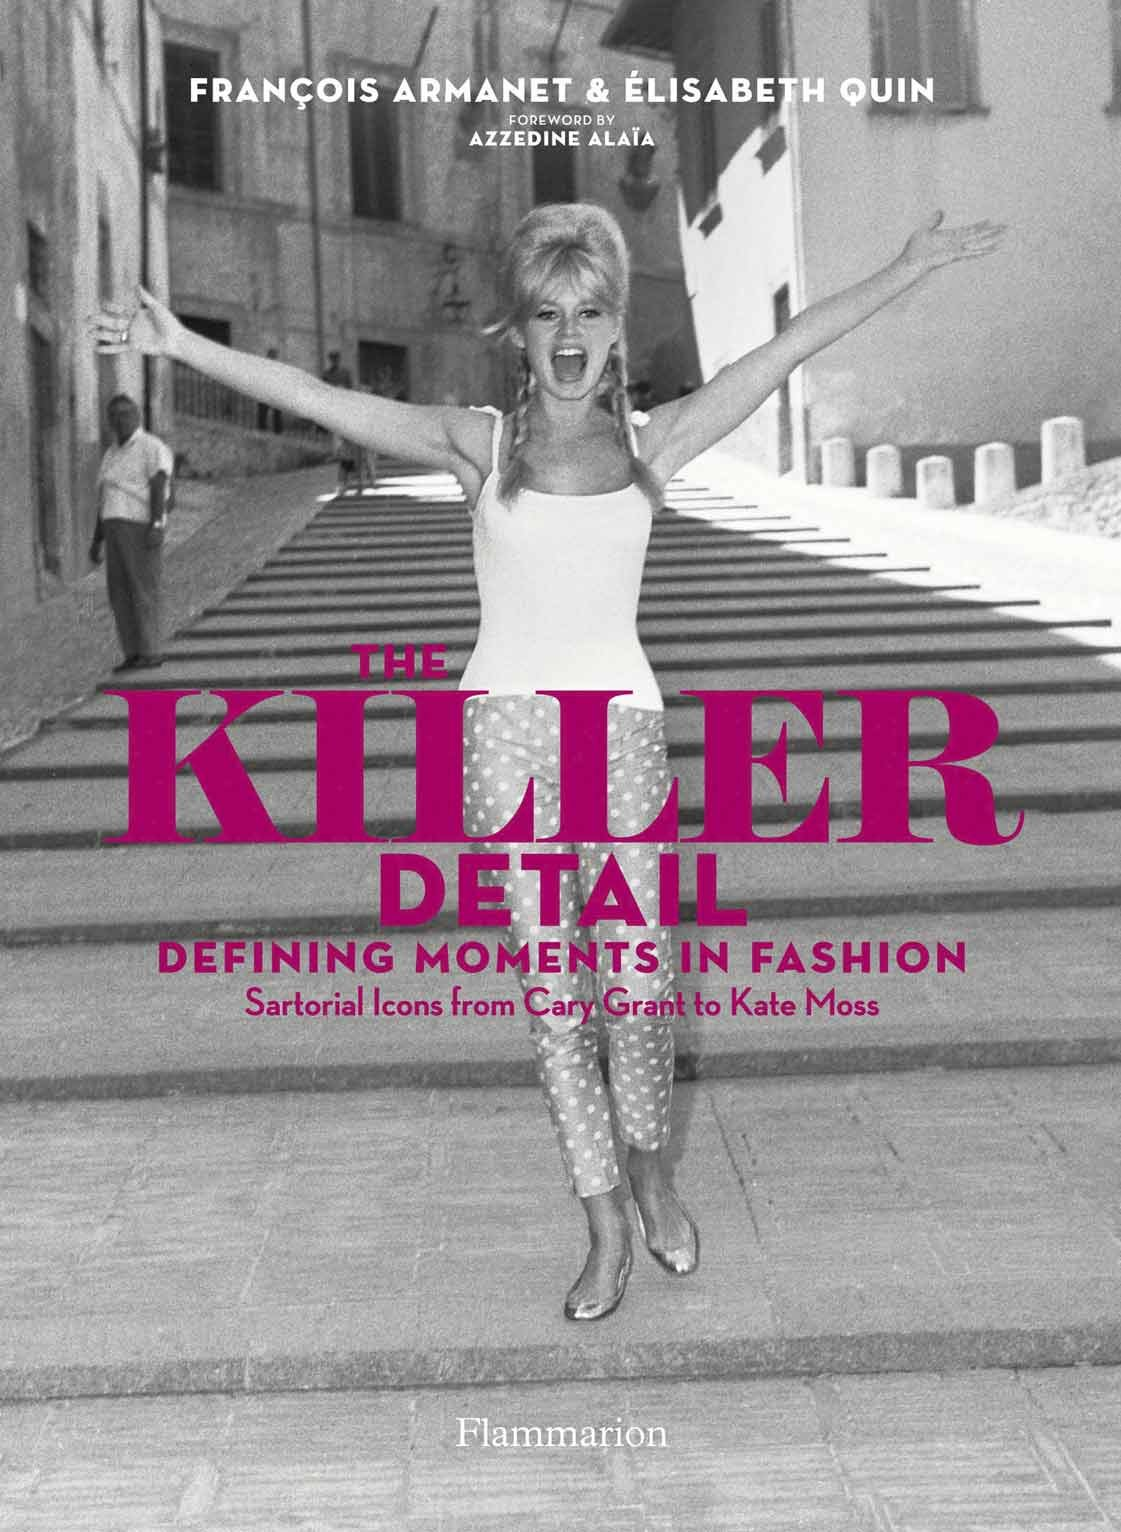 the killer detail defining moments in fashion sartorial icons the killer detail defining moments in fashion sartorial icons from cary grant to kate moss amazon co uk franccedilois armanet eacutelisabeth quin 9782080201539